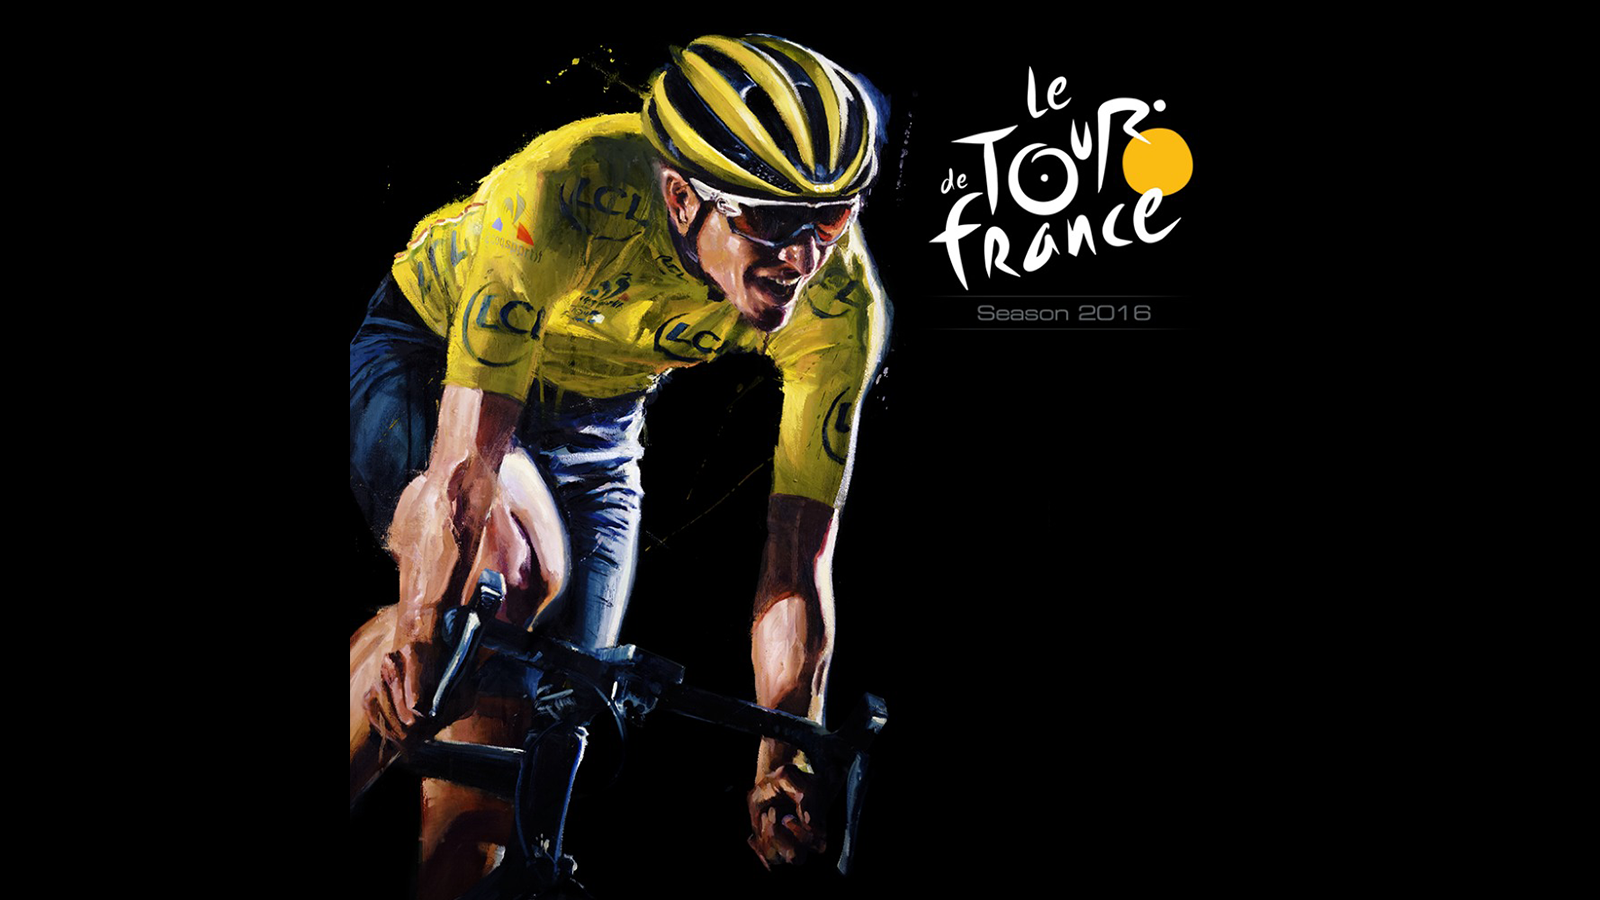 10 Most Popular Tour De France Wallpapers Full Hd 1080p: Tour De France Wallpapers Hd